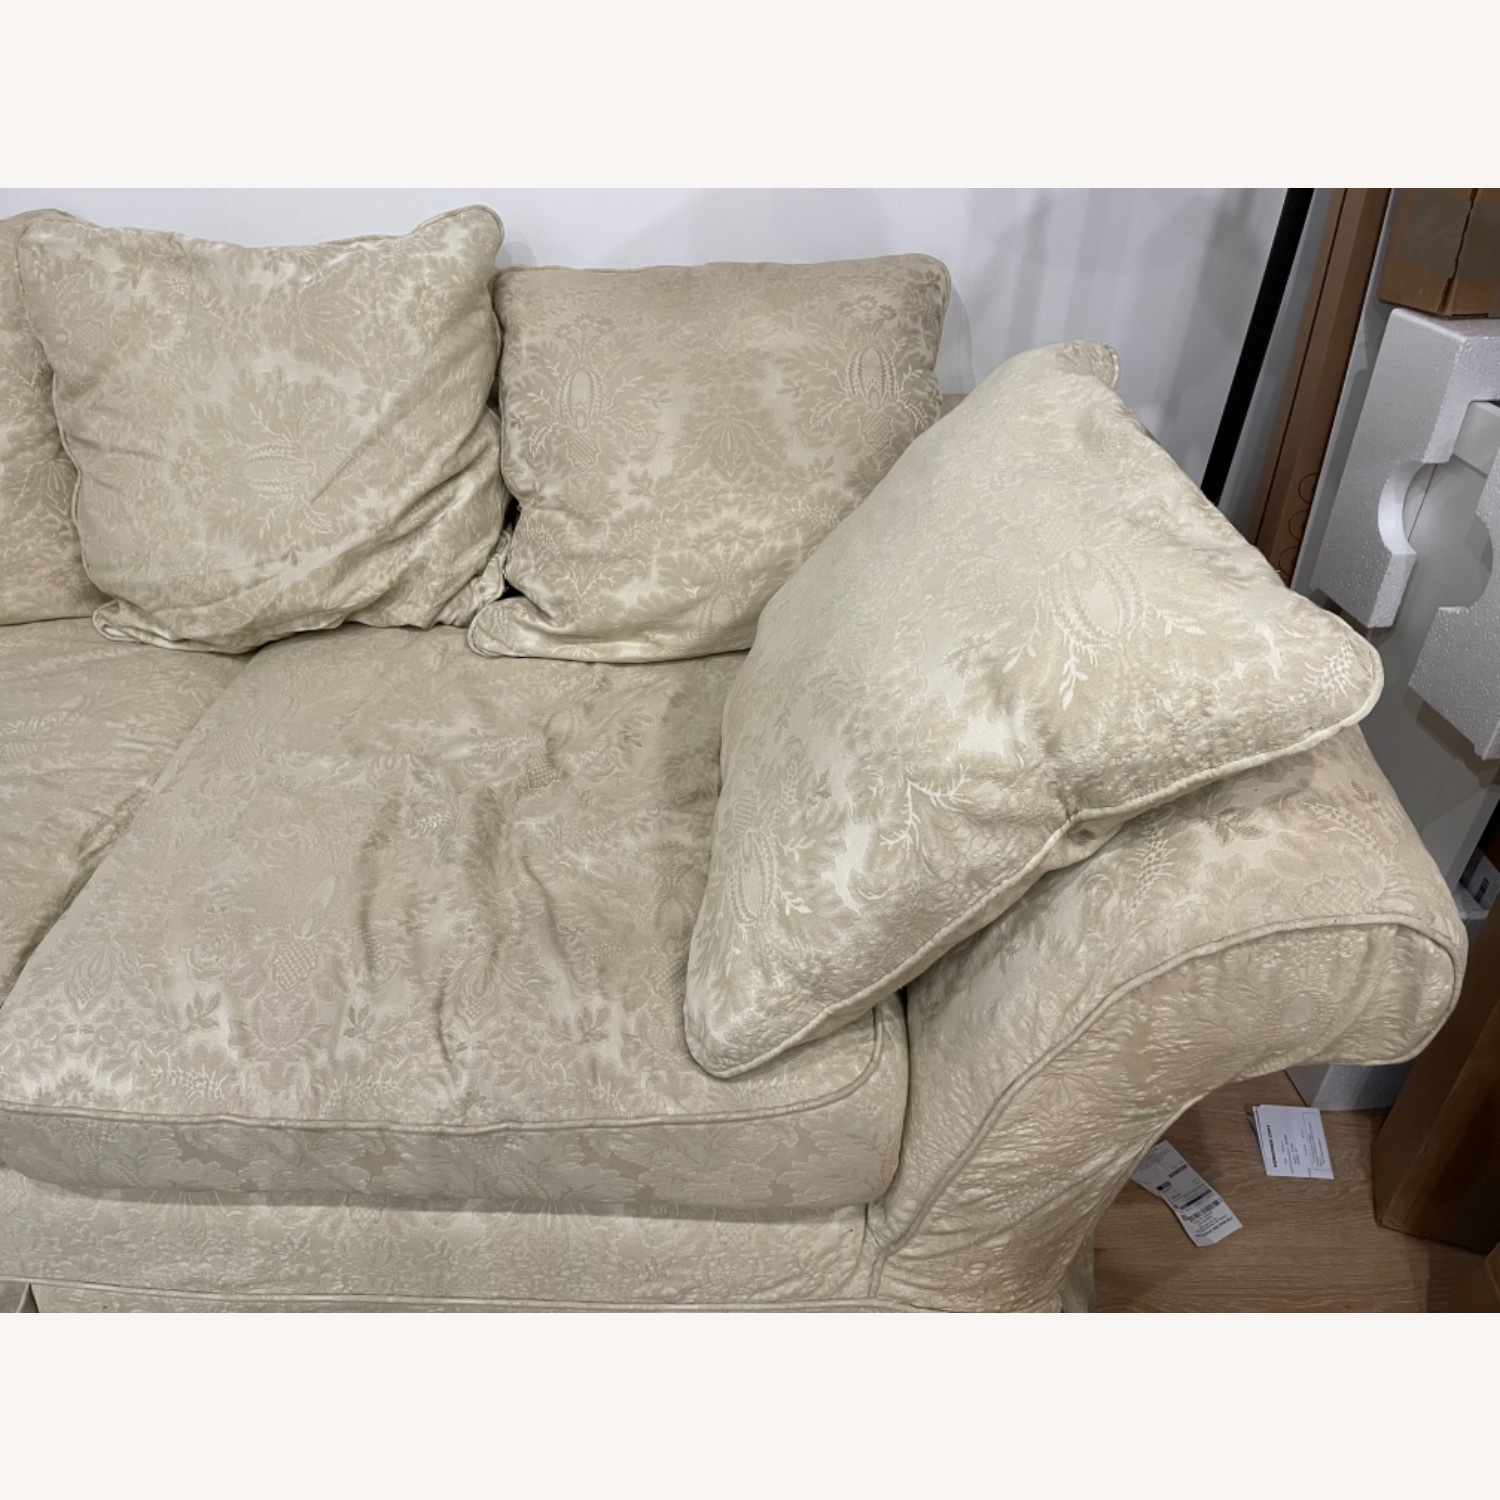 Shabby chic 2 Seater Sofa in Ivory Damask Pattern - image-3